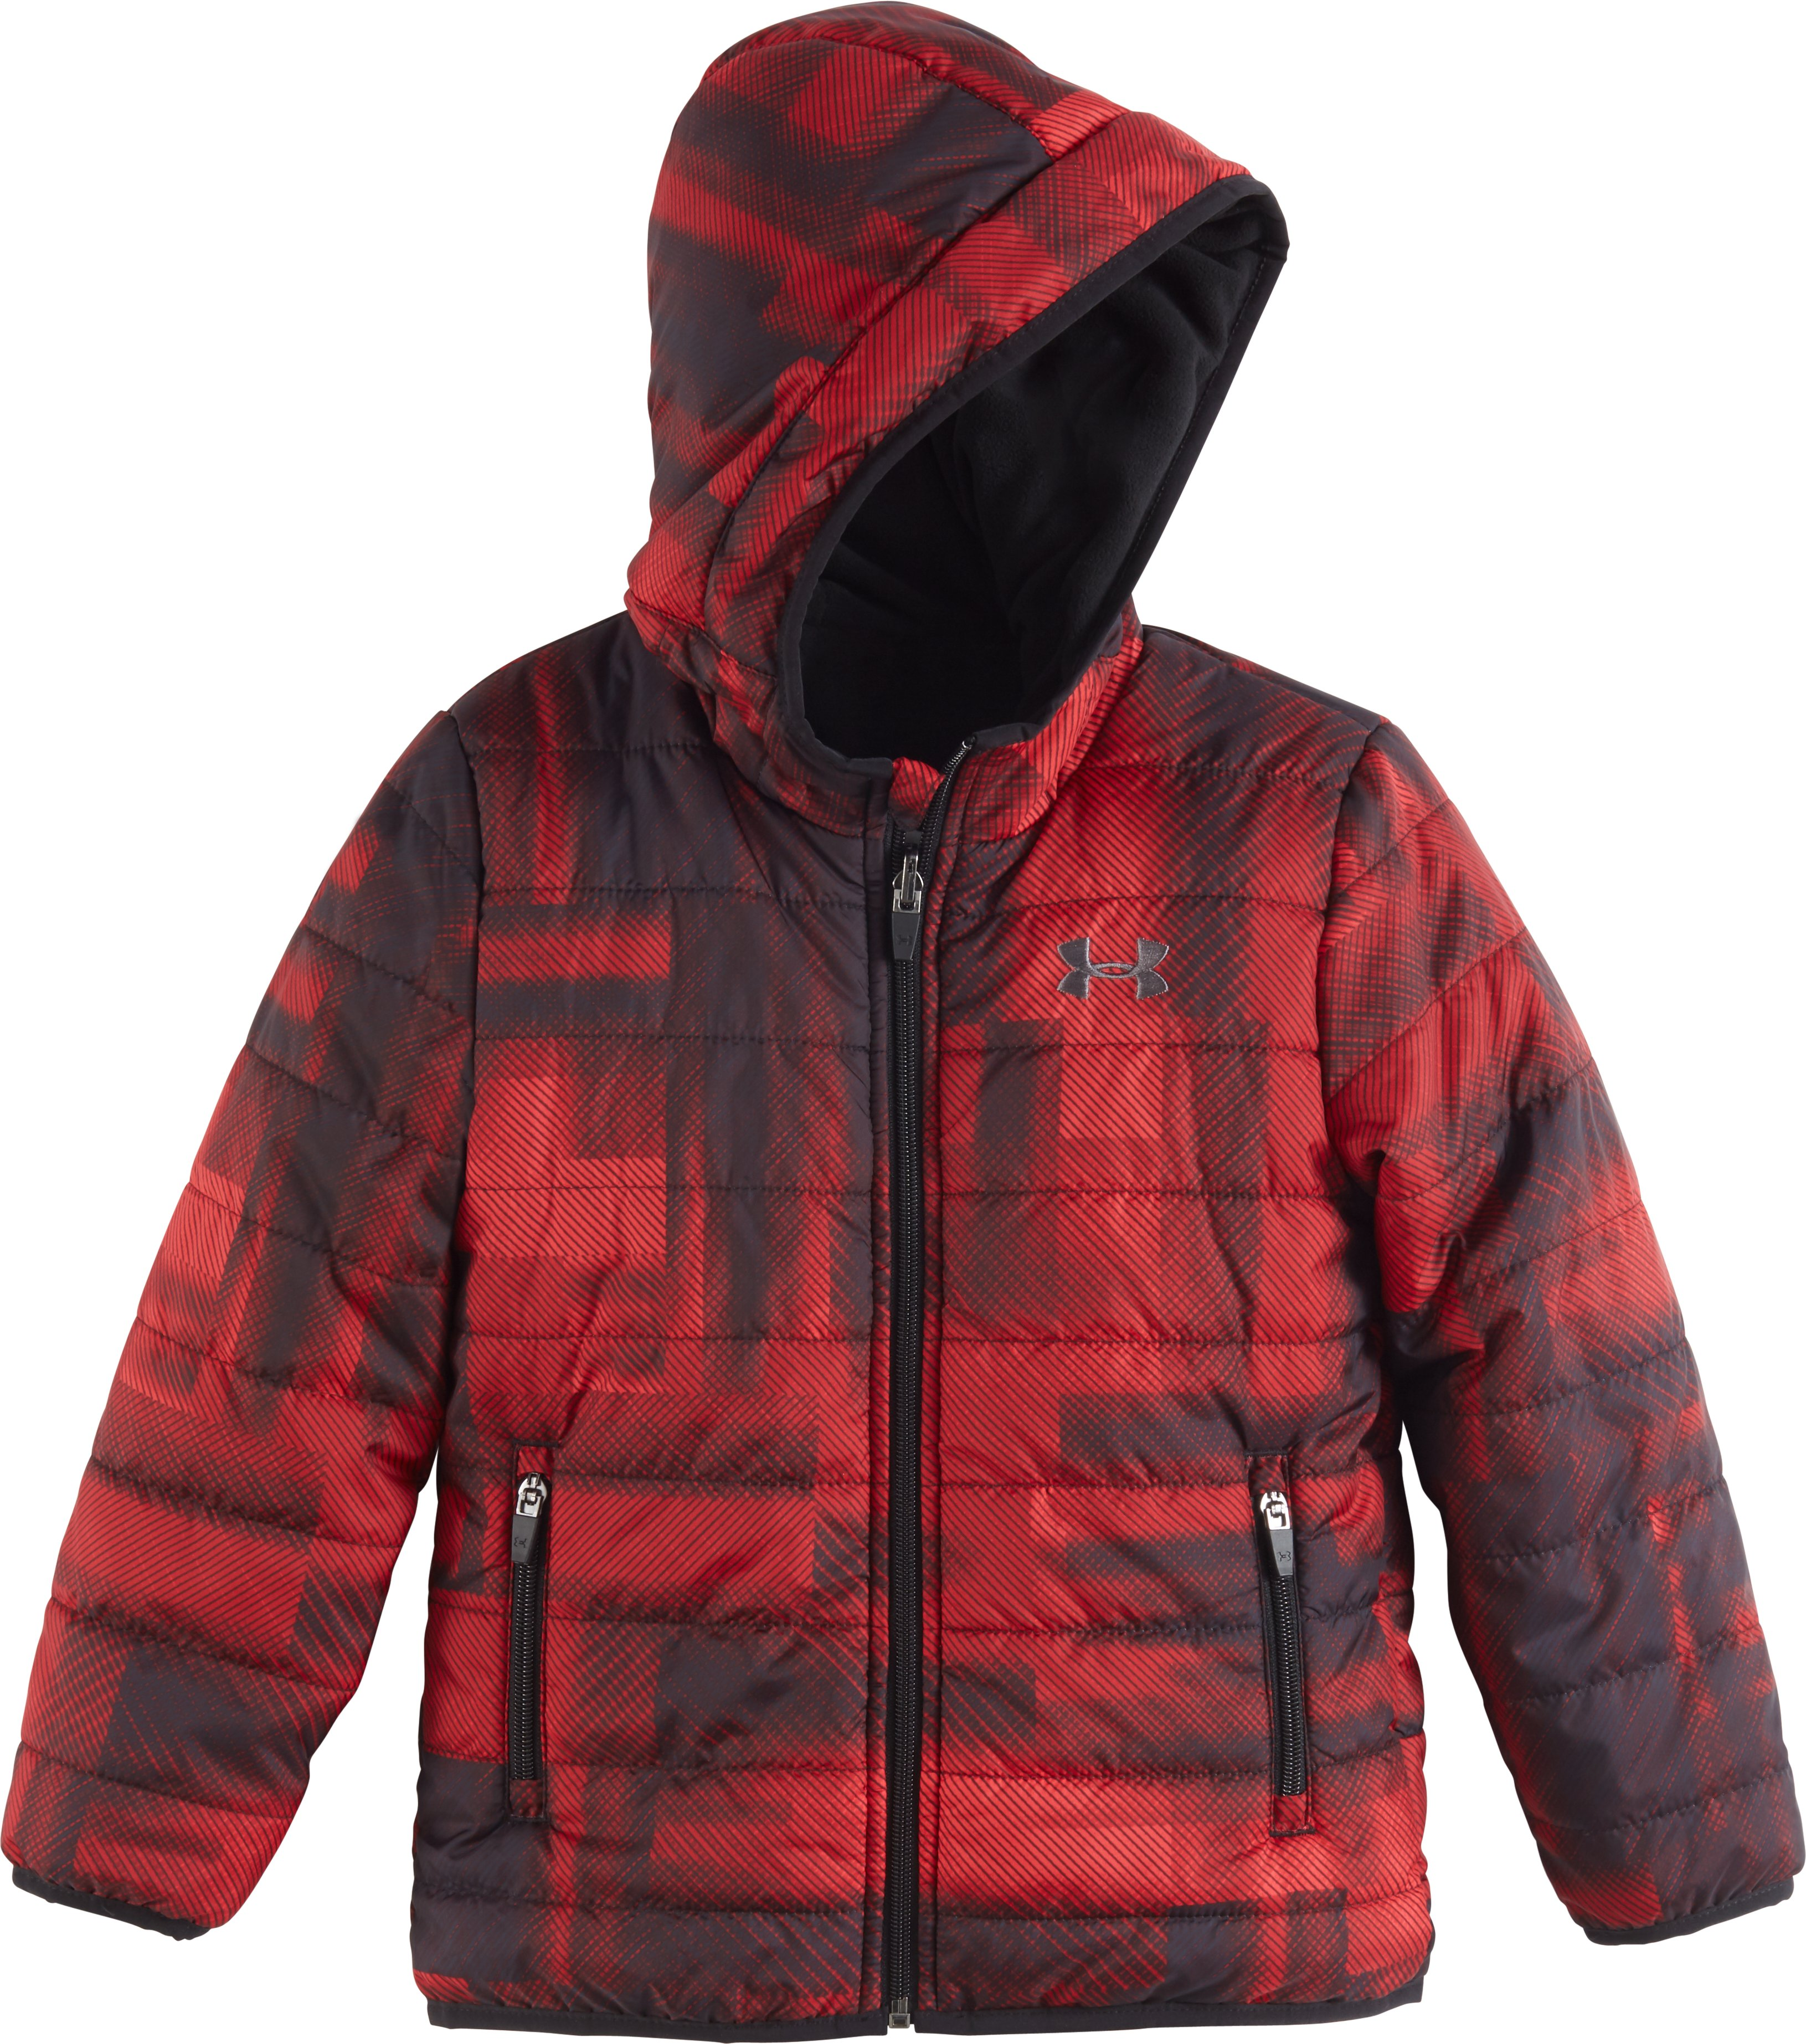 Boys' Pre-School UA Blast Feature Reversible Puffer Jacket, Red, zoomed image